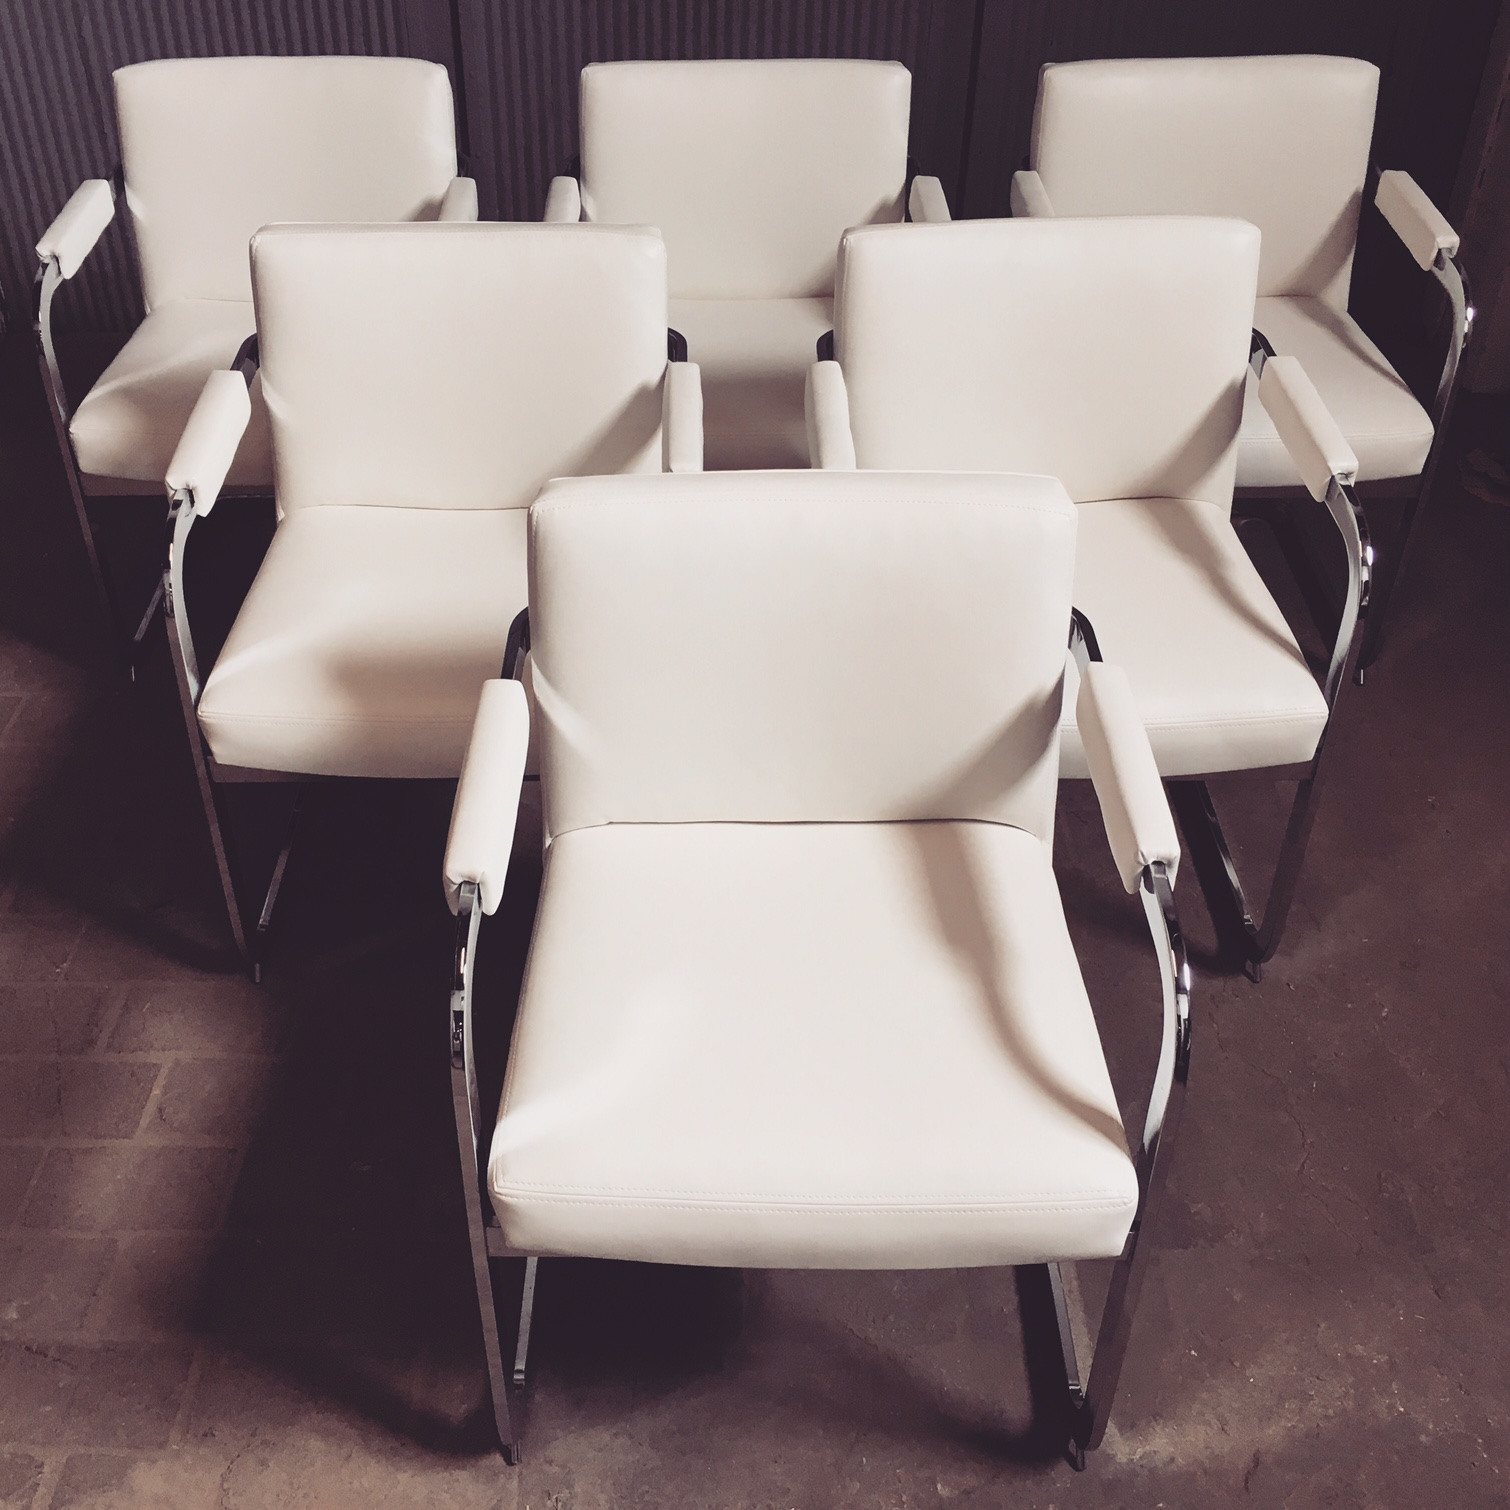 Recovered Interior Milo Baughman Dining Chairs